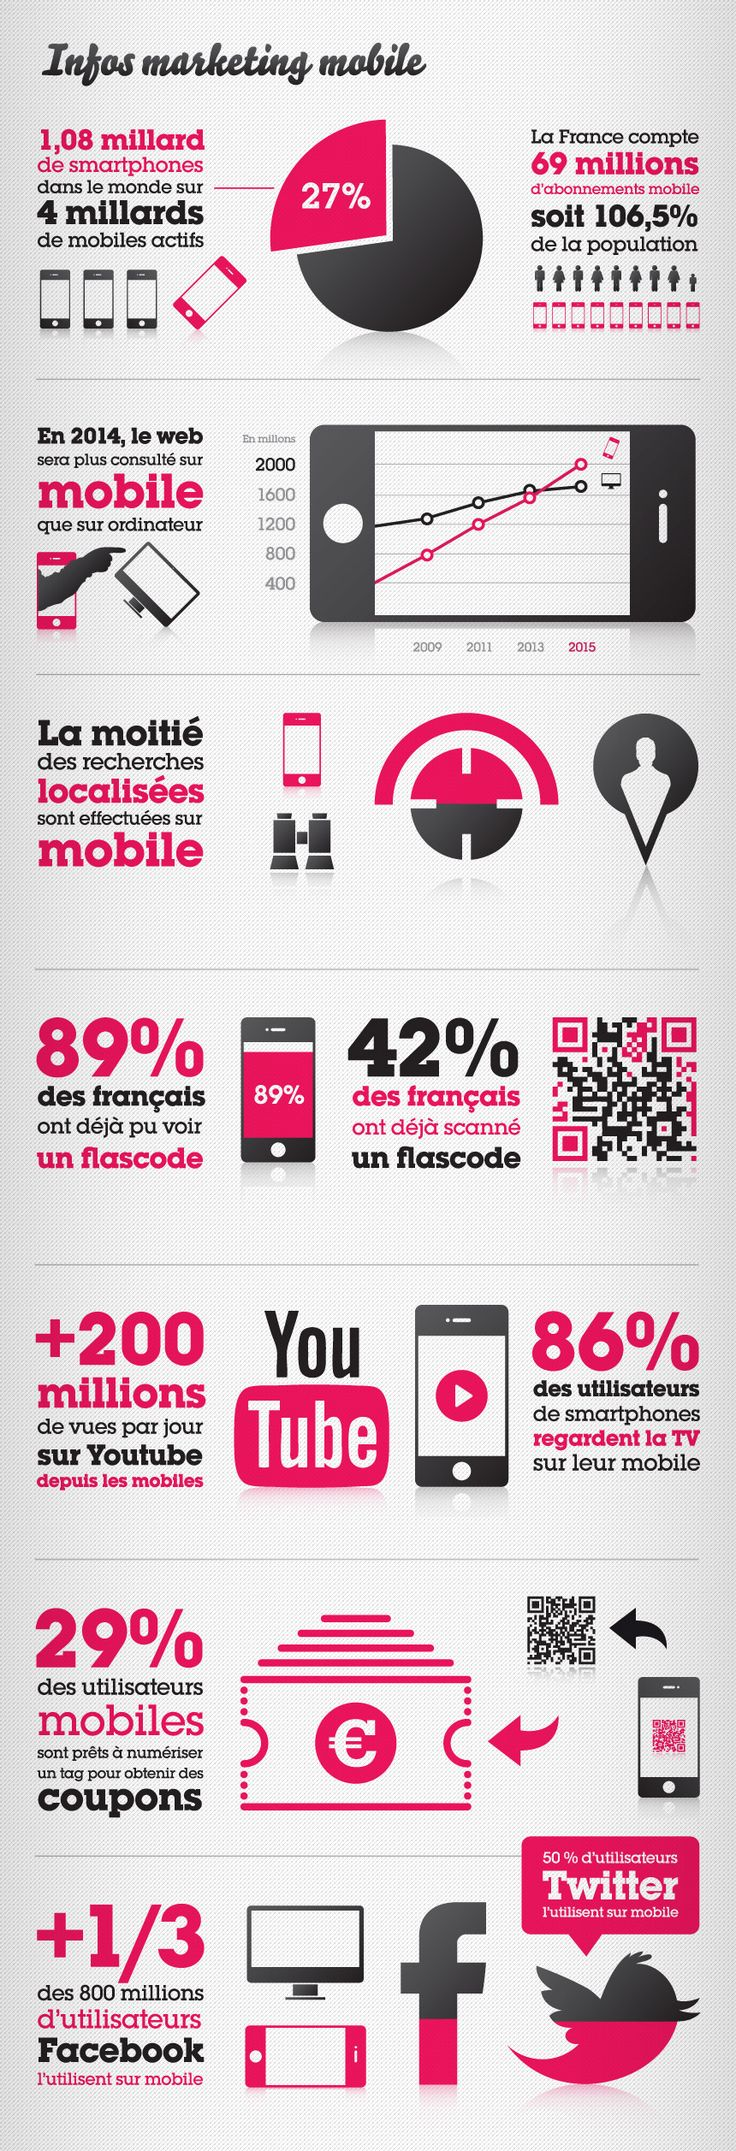 caconcept-alexis-cretin-graphiste-montpellier-actualites-creation-digitalmobile-communication-concept-charte-graphique-7